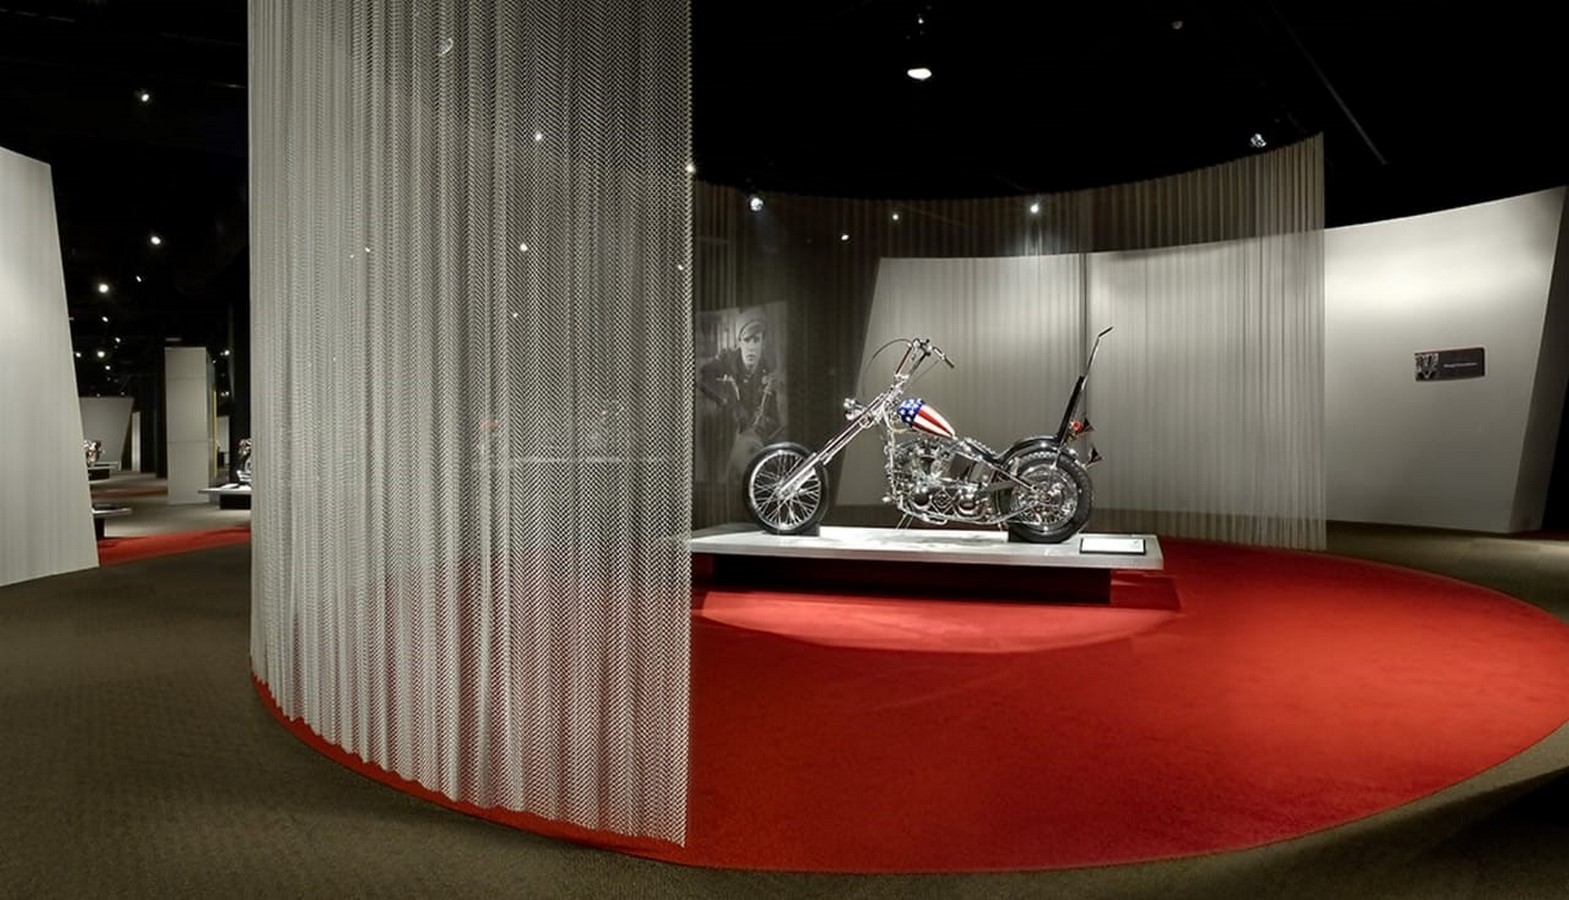 ART OF THE MOTORCYCLE TOURING EXHIBITION, LICENSED BY THE GUGGENHEIM MUSEUM, MEMPHIS - Sheet2